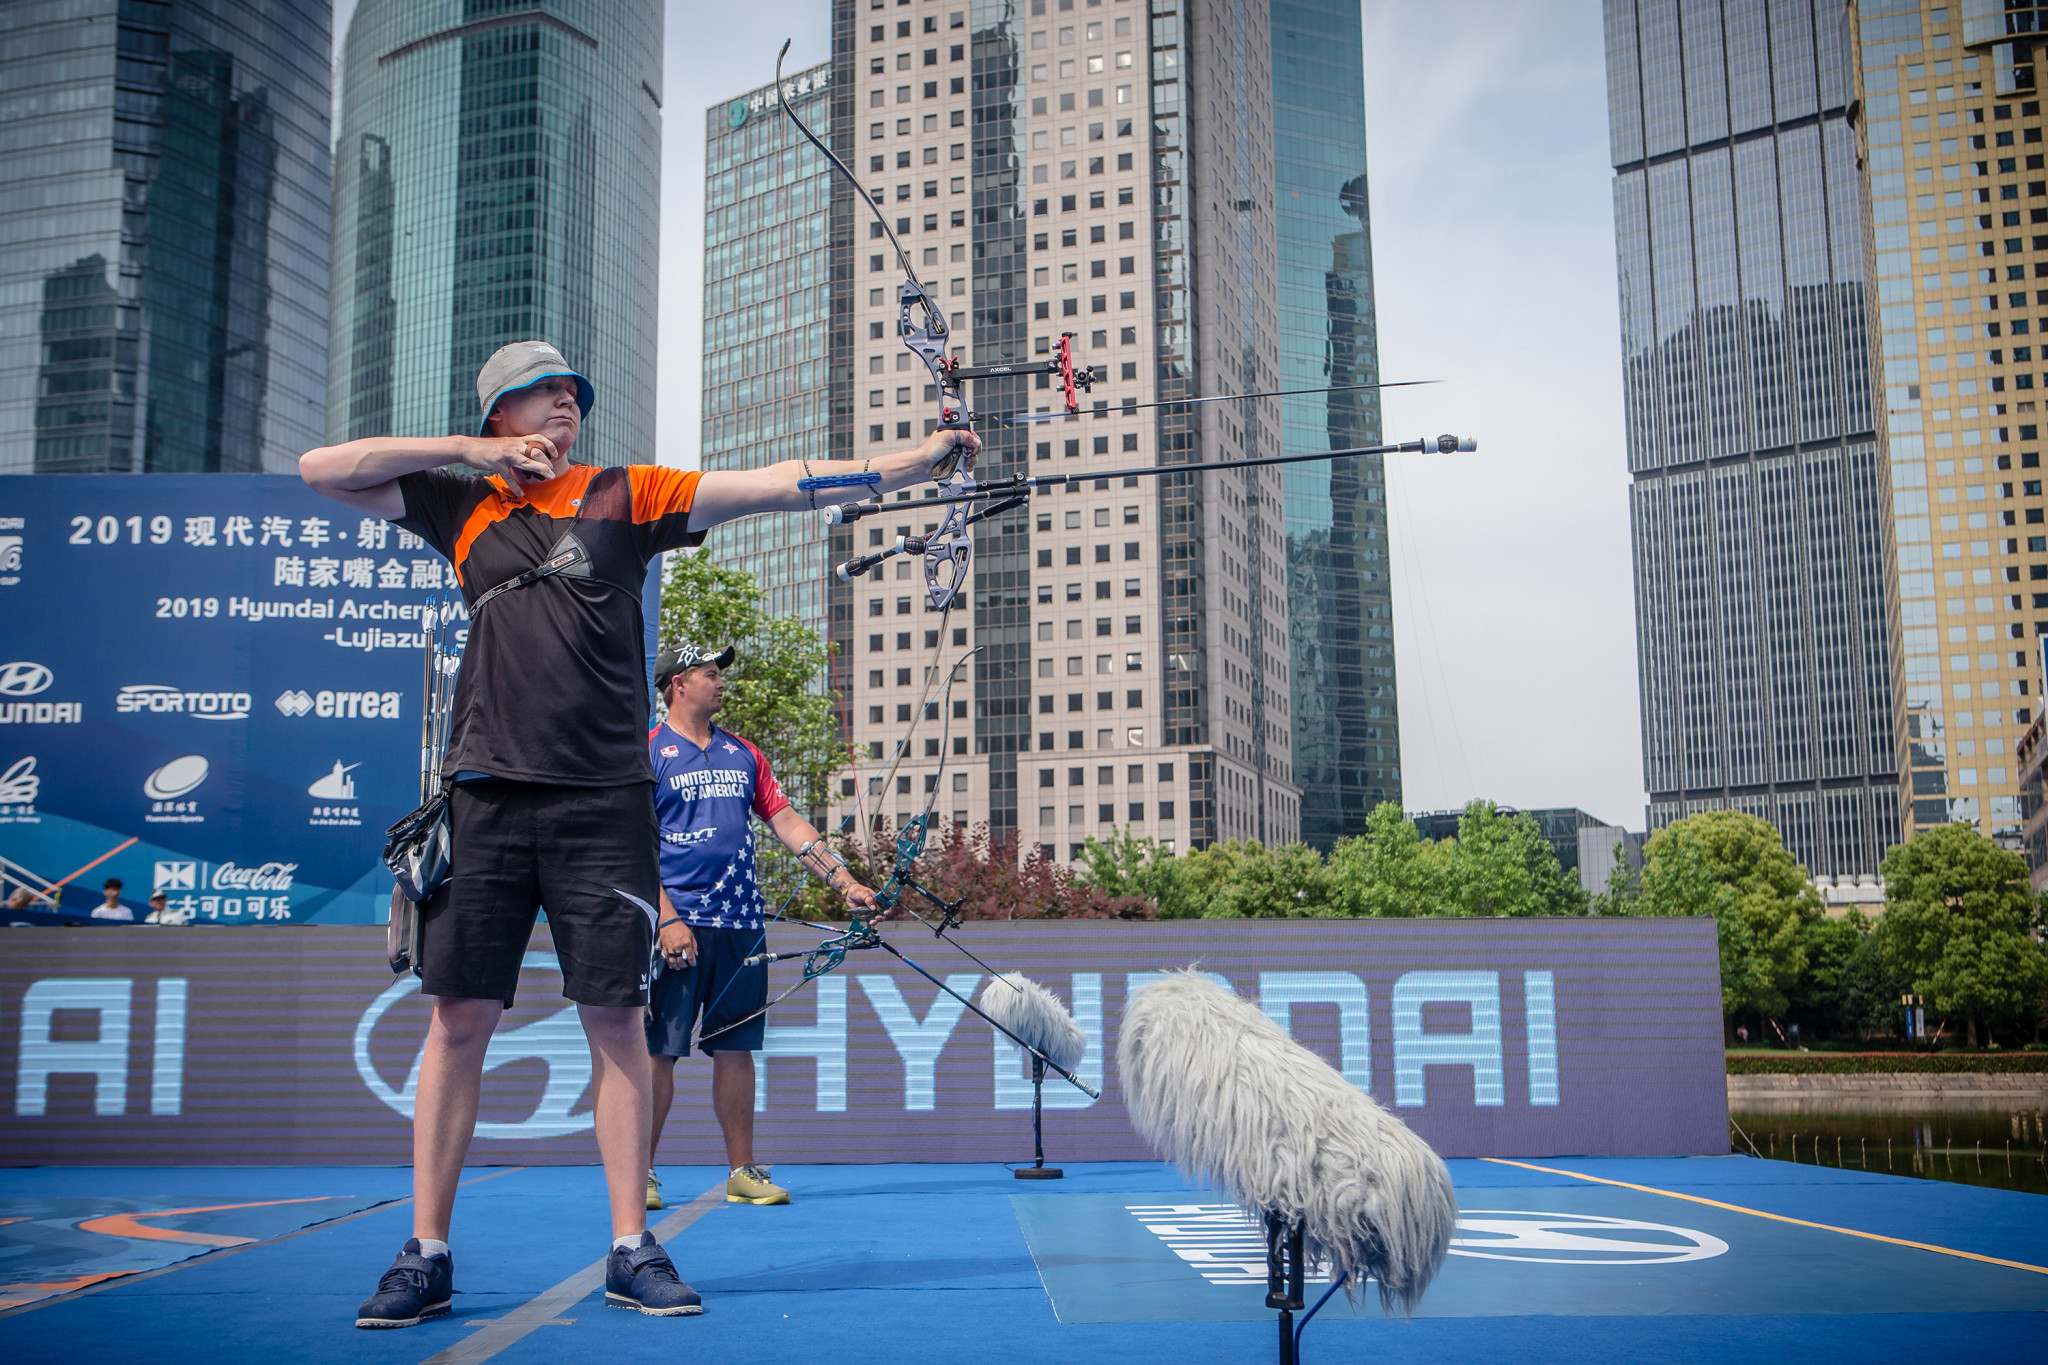 Shanghai to host Archery World Cup Final instead of stage due to coronavirus